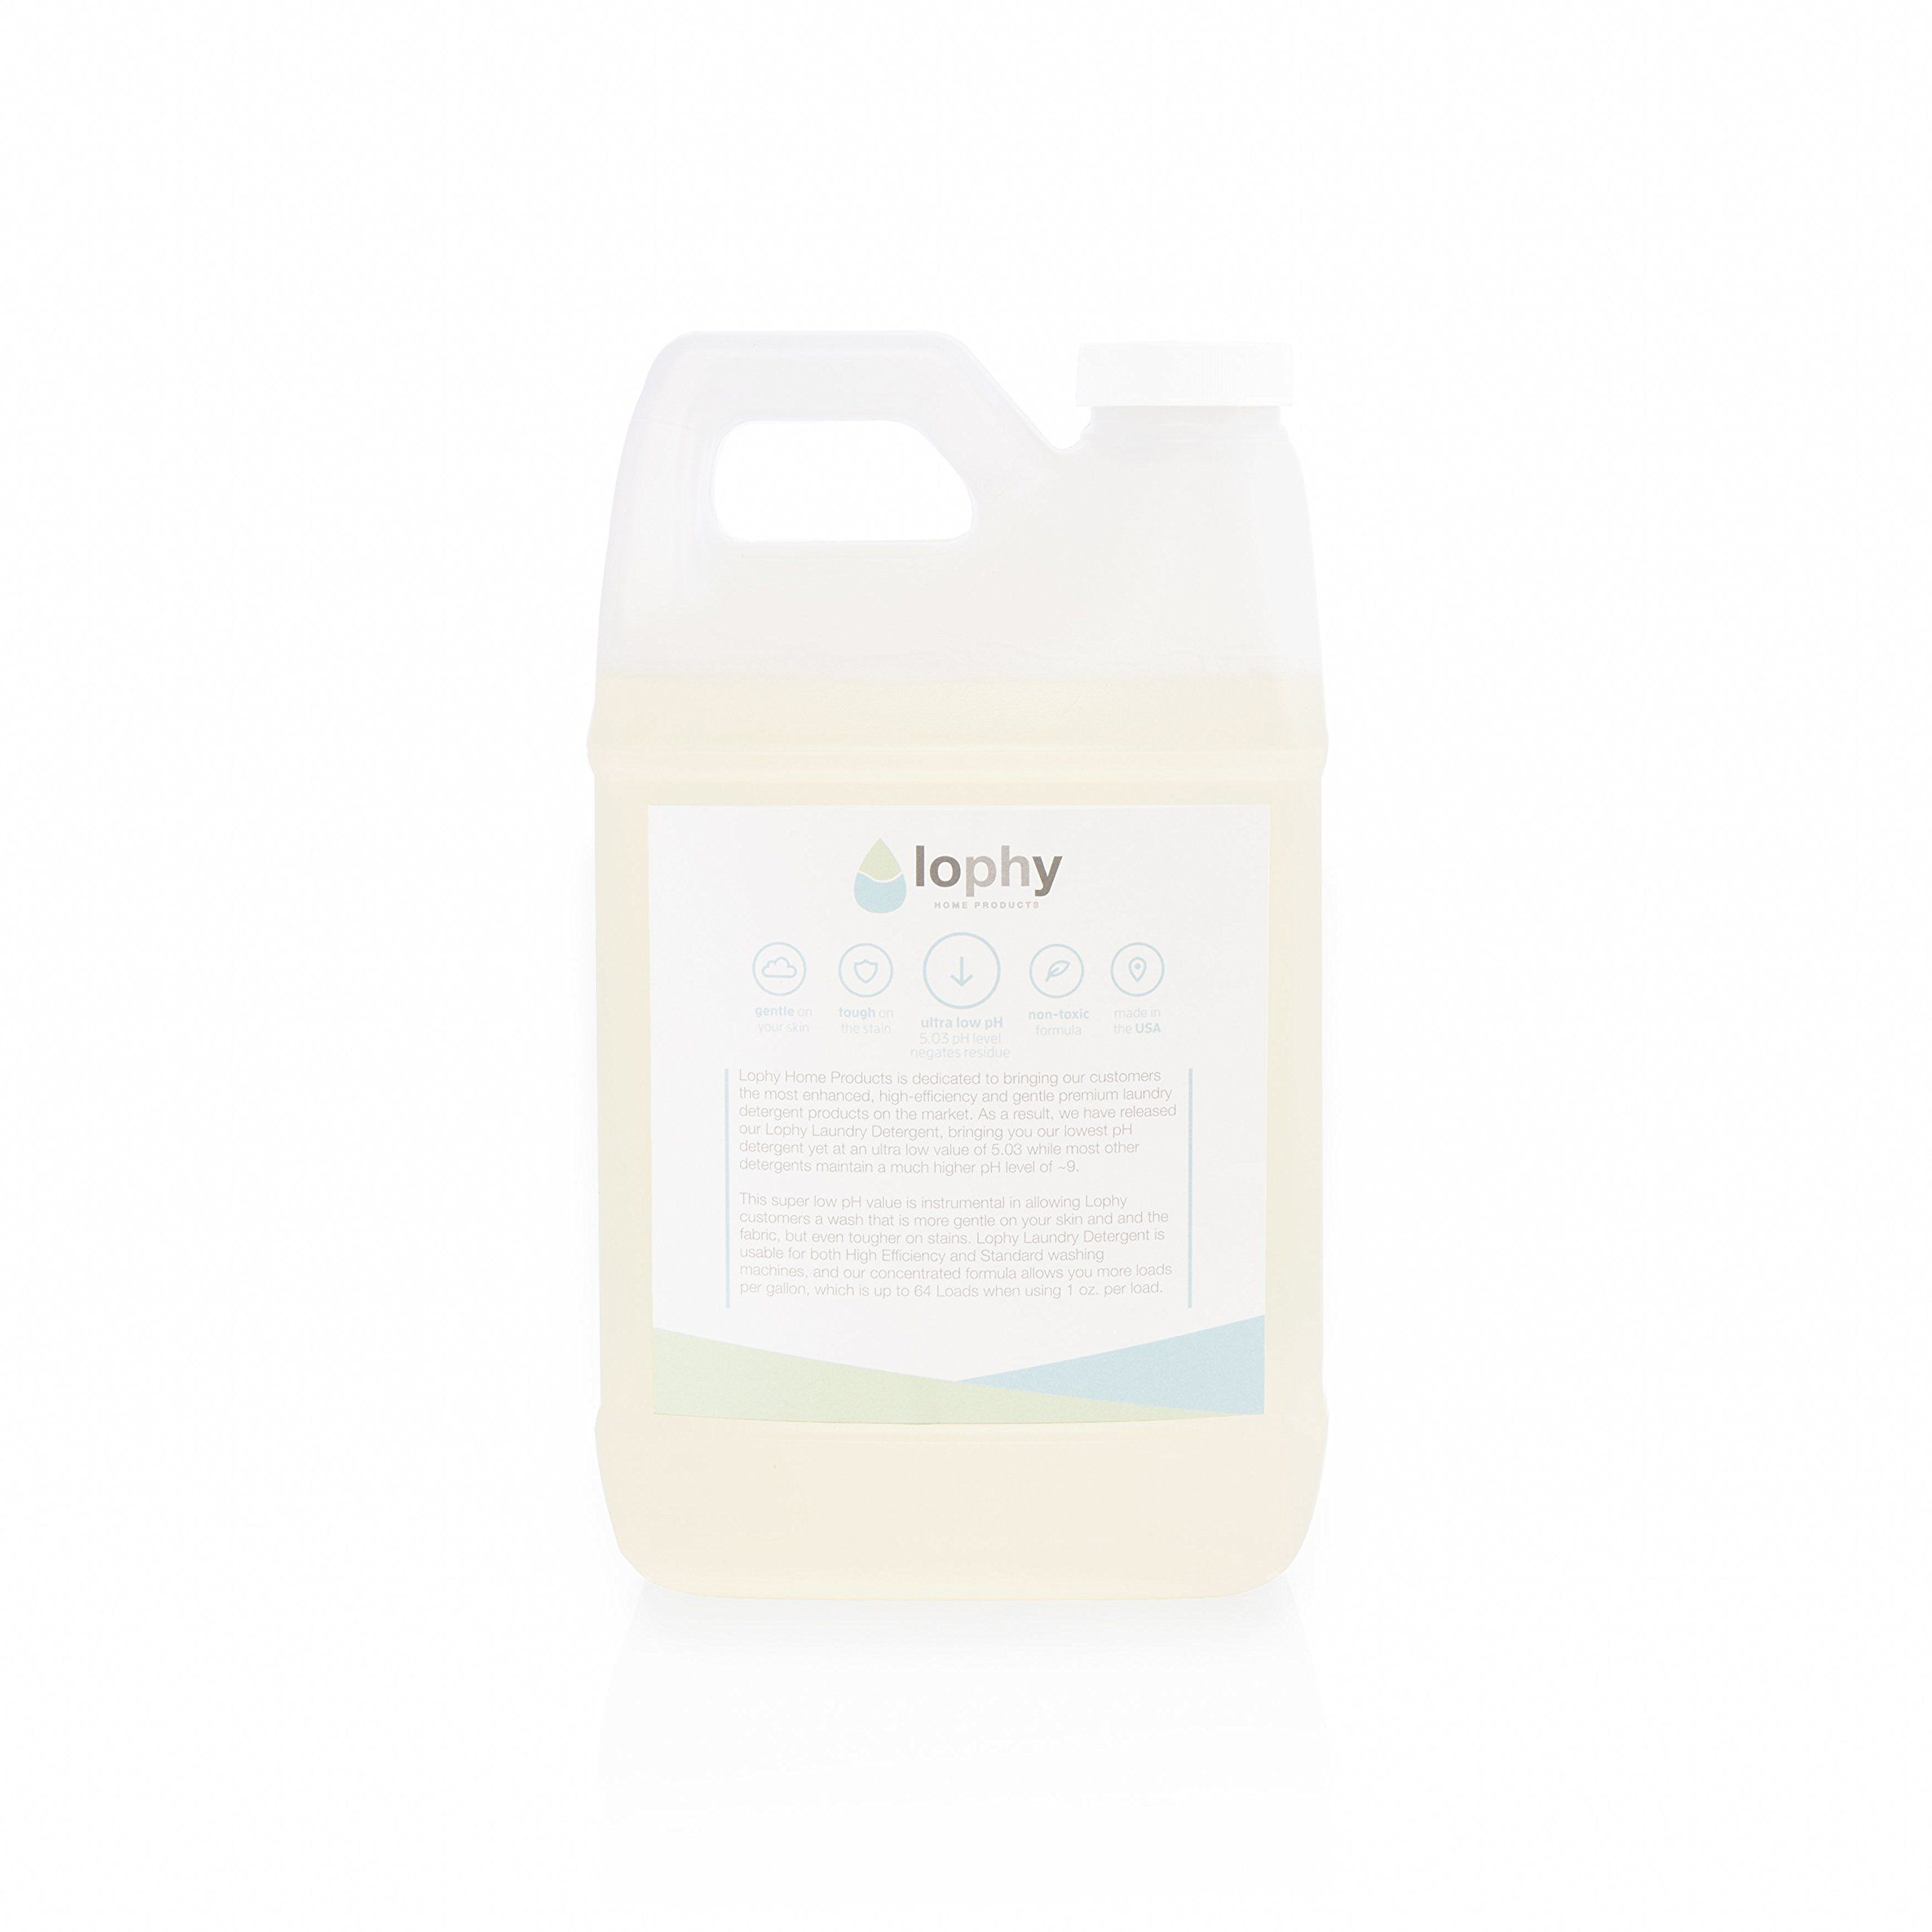 Lophy Low Ph Laundry Detergent Soap Free Detergent Soap Laundry Detergent Soap Baby Detergent